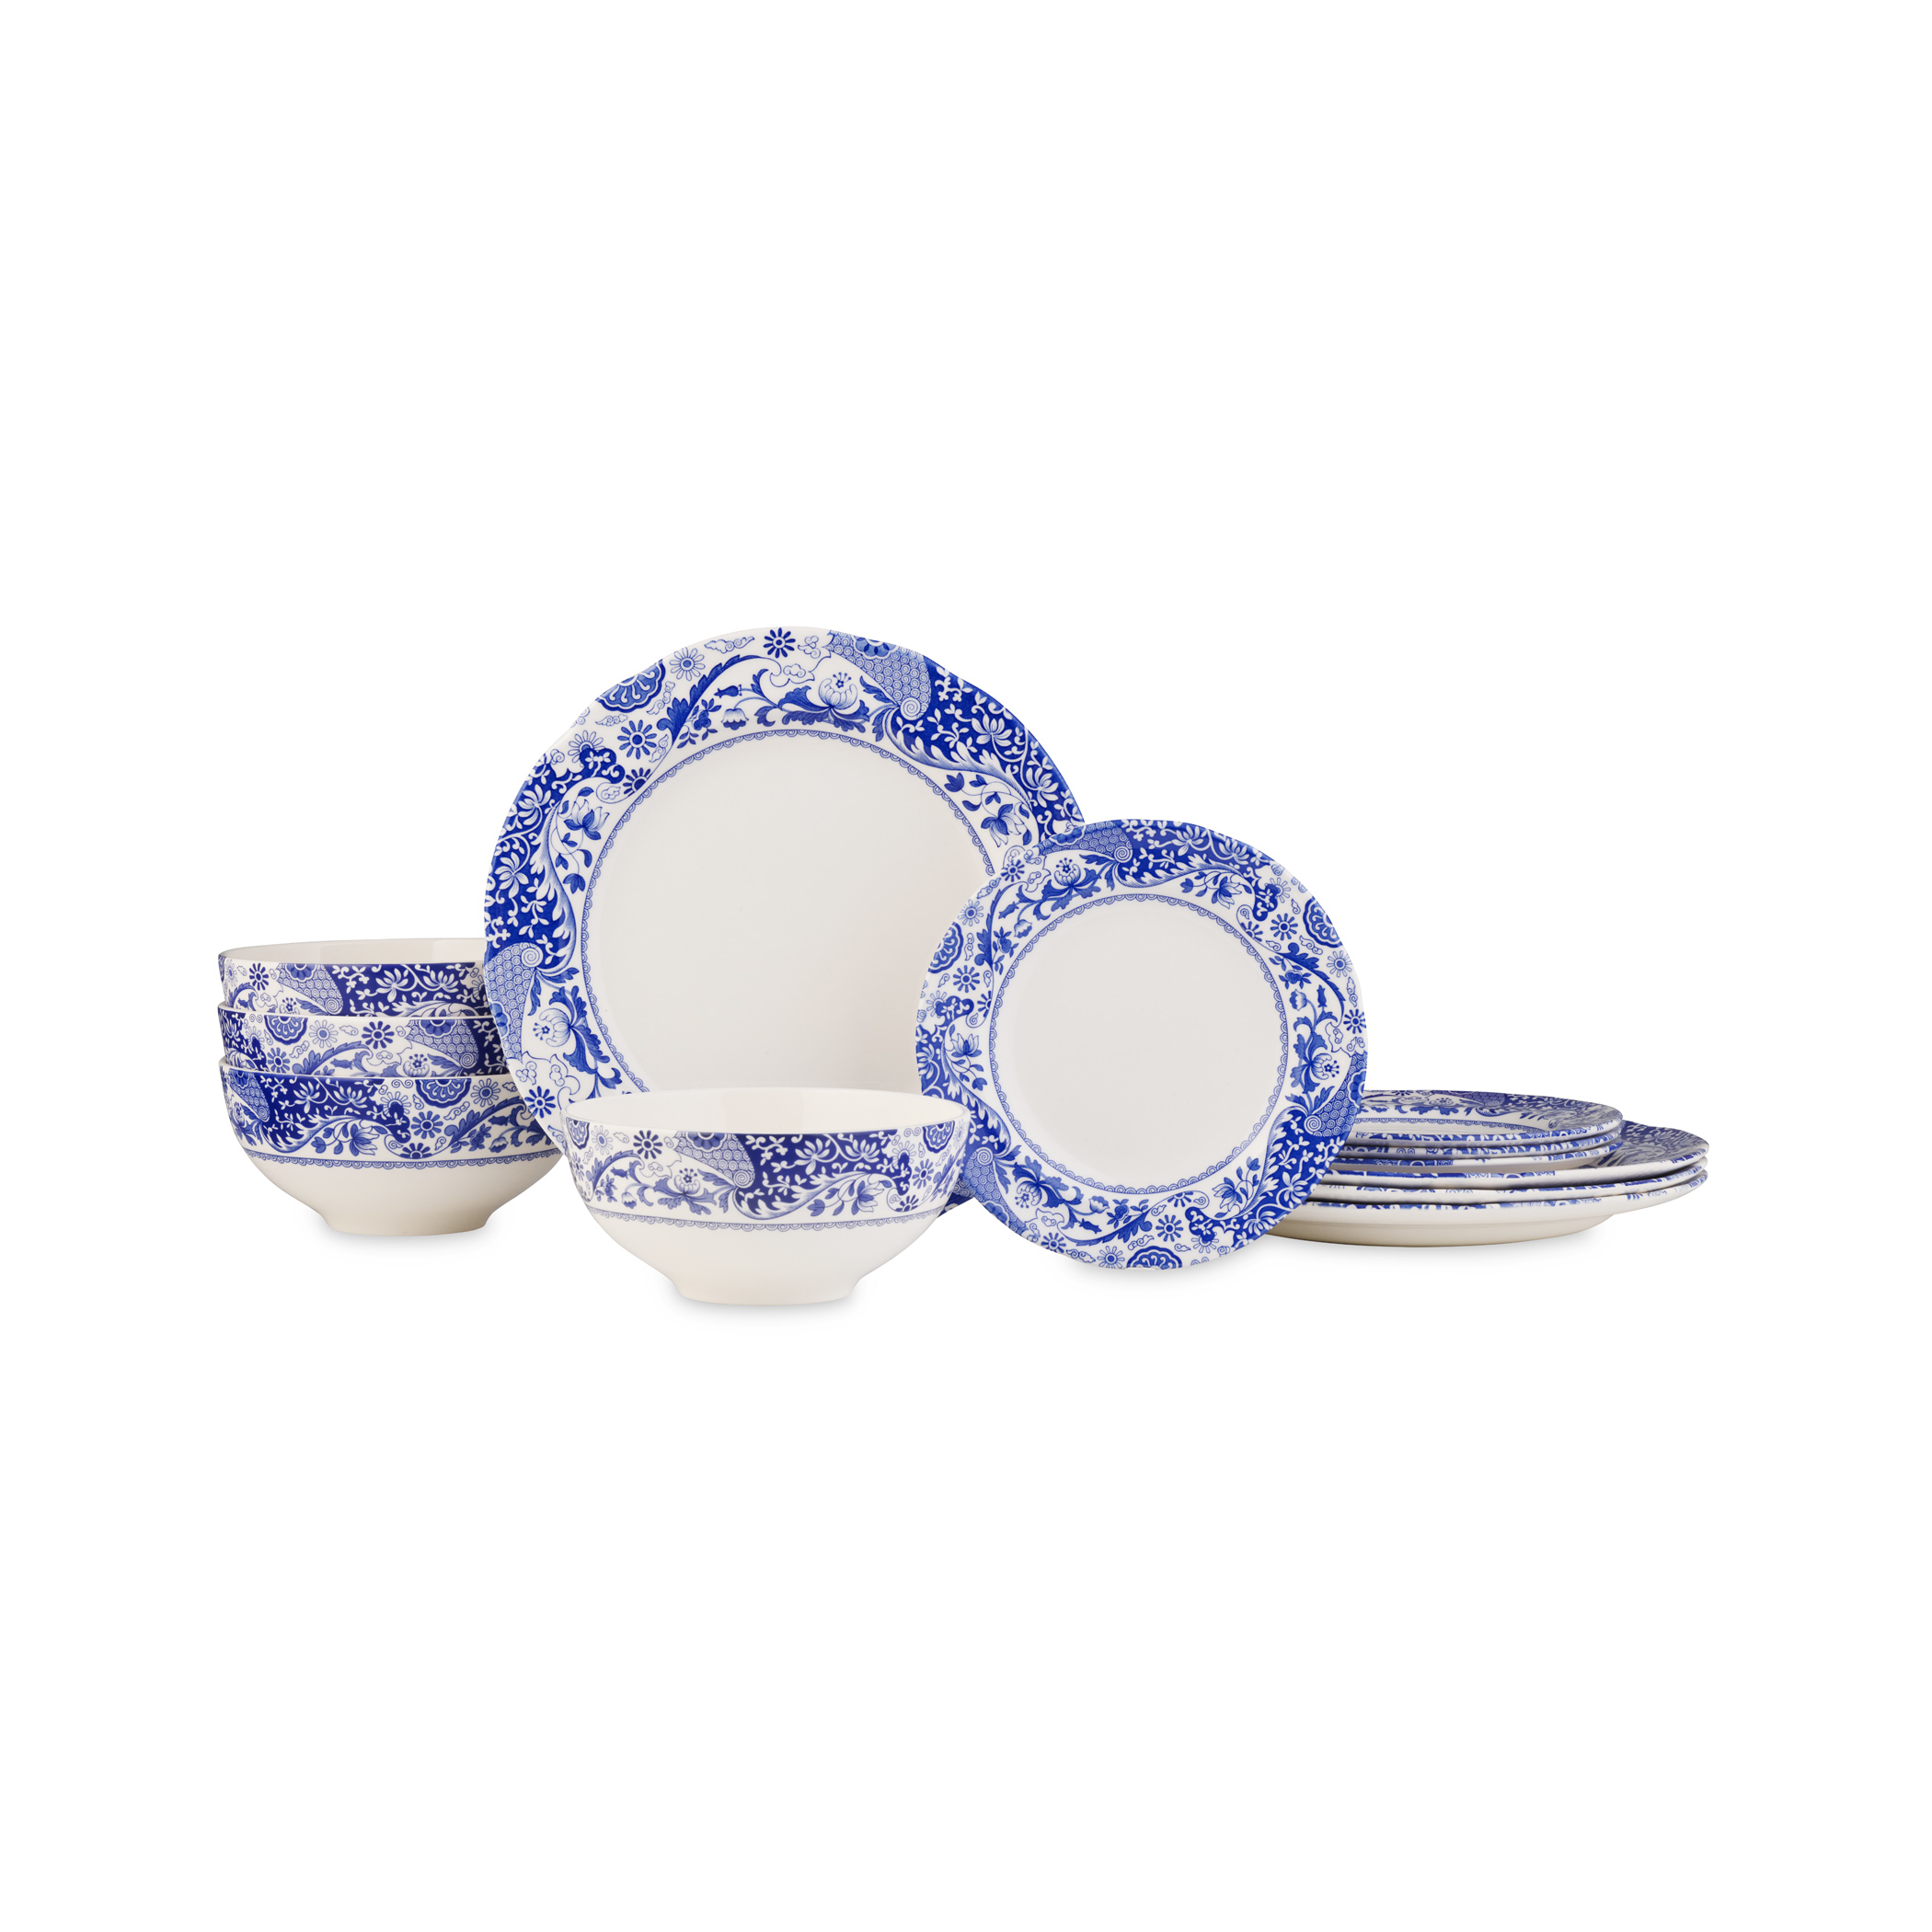 Spode Blue Italian Brocato 12 Piece Set image number 0